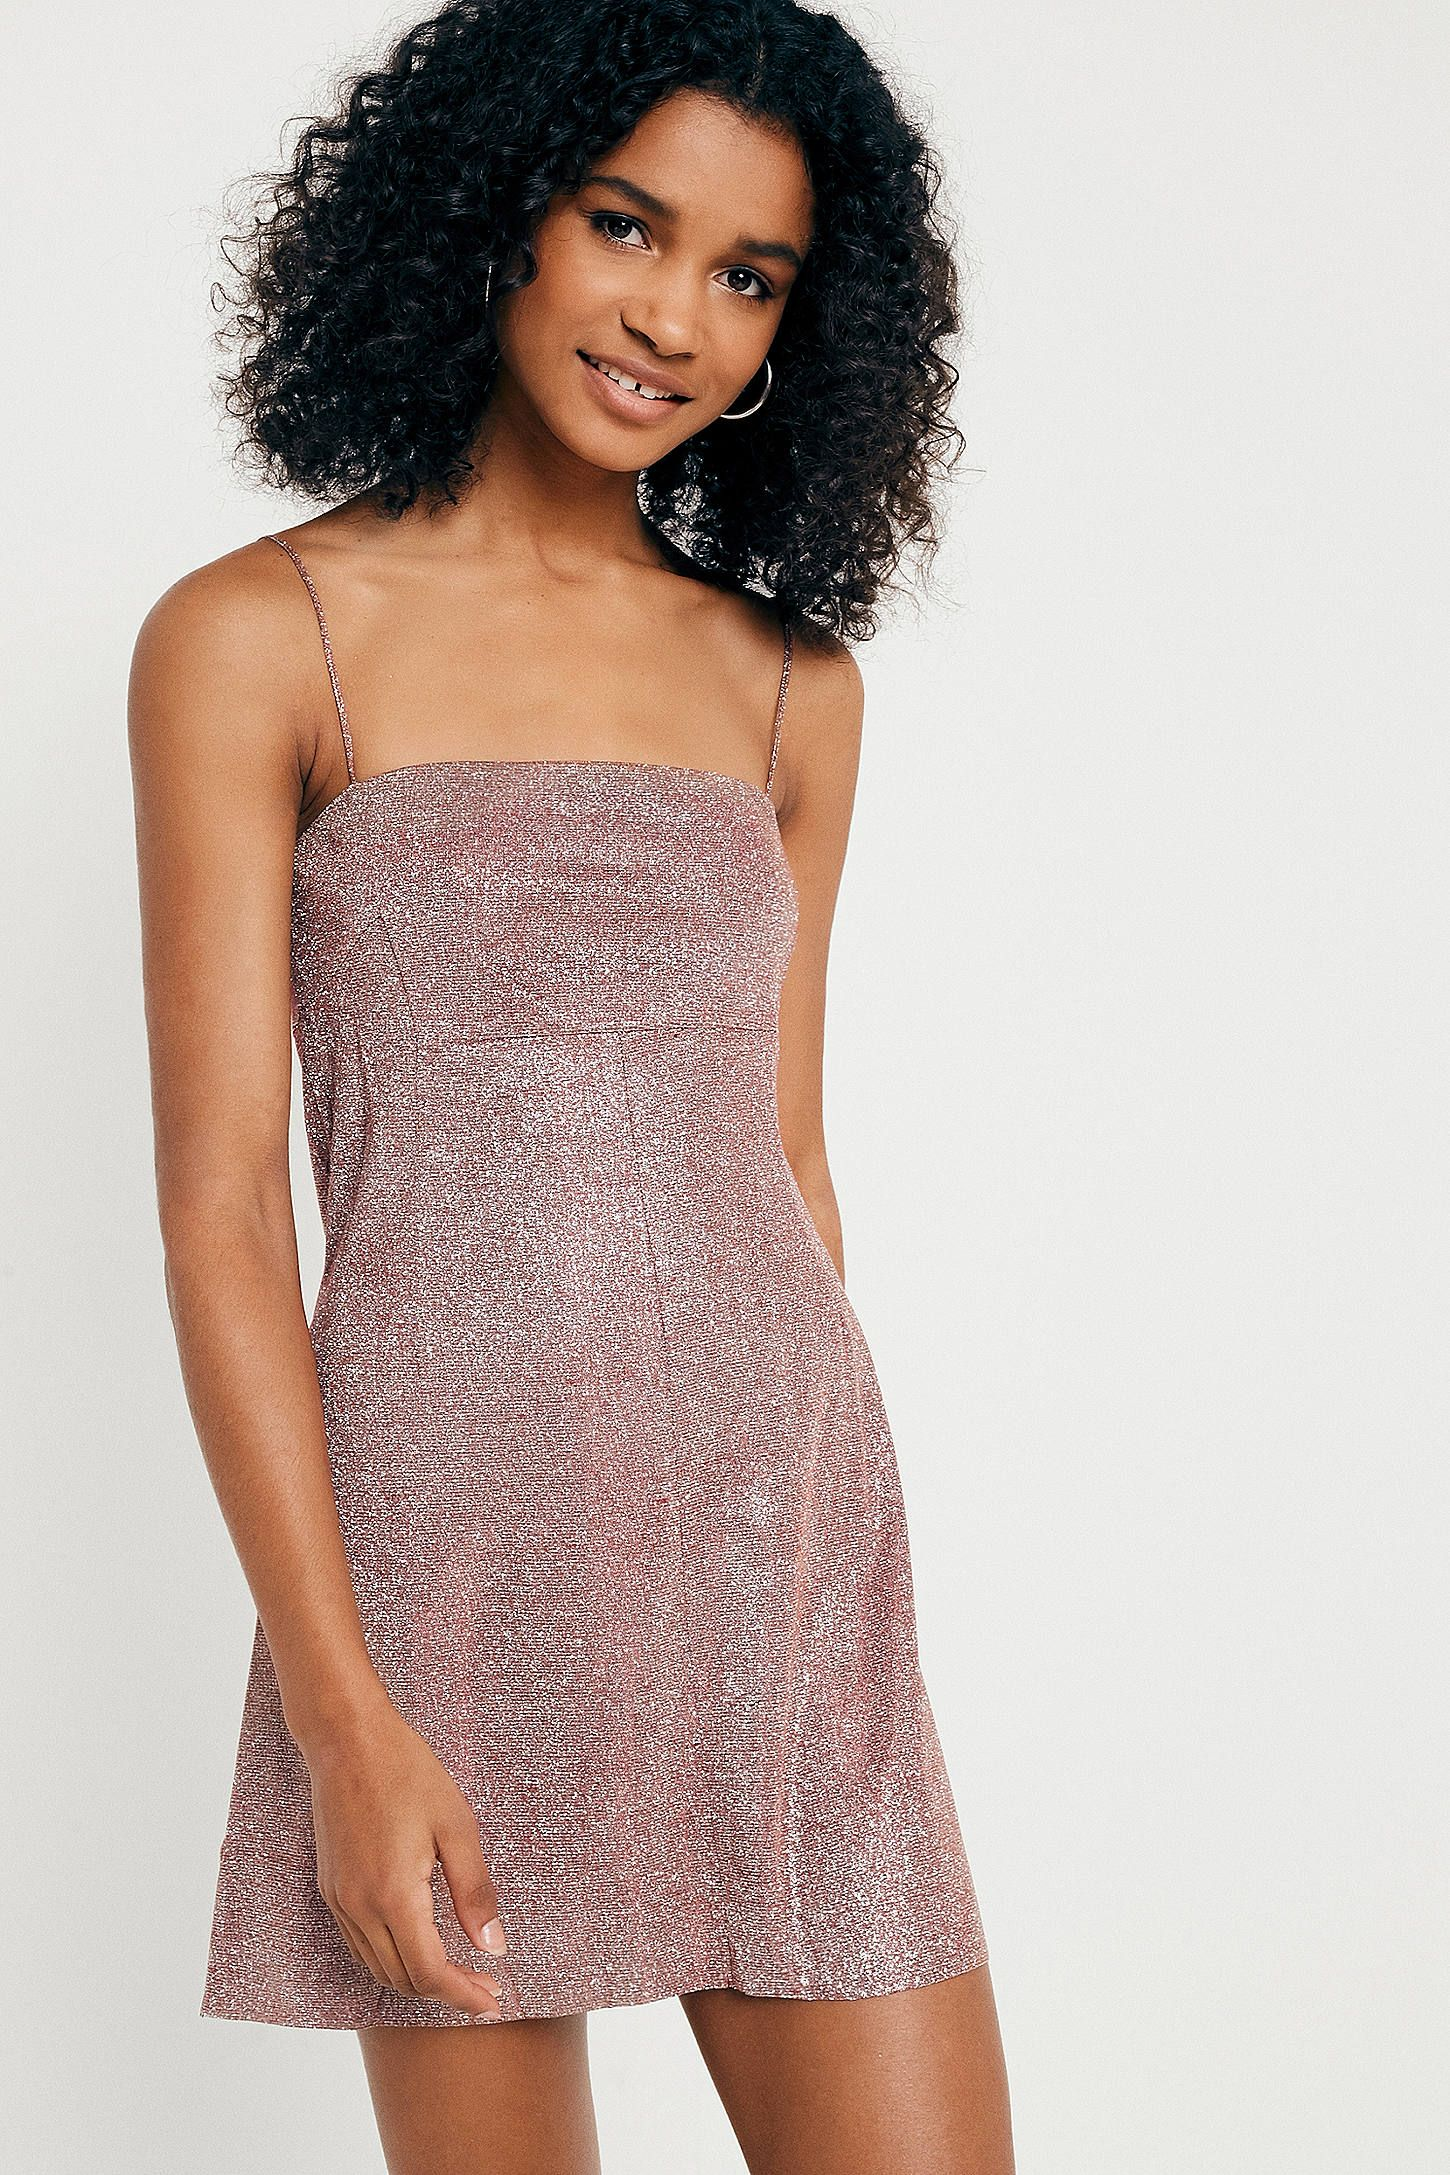 23a6bdfac77 Shop Pins   Needles Moonbeam Metallic Slip Dress at Urban Outfitters today.  We carry all the latest styles